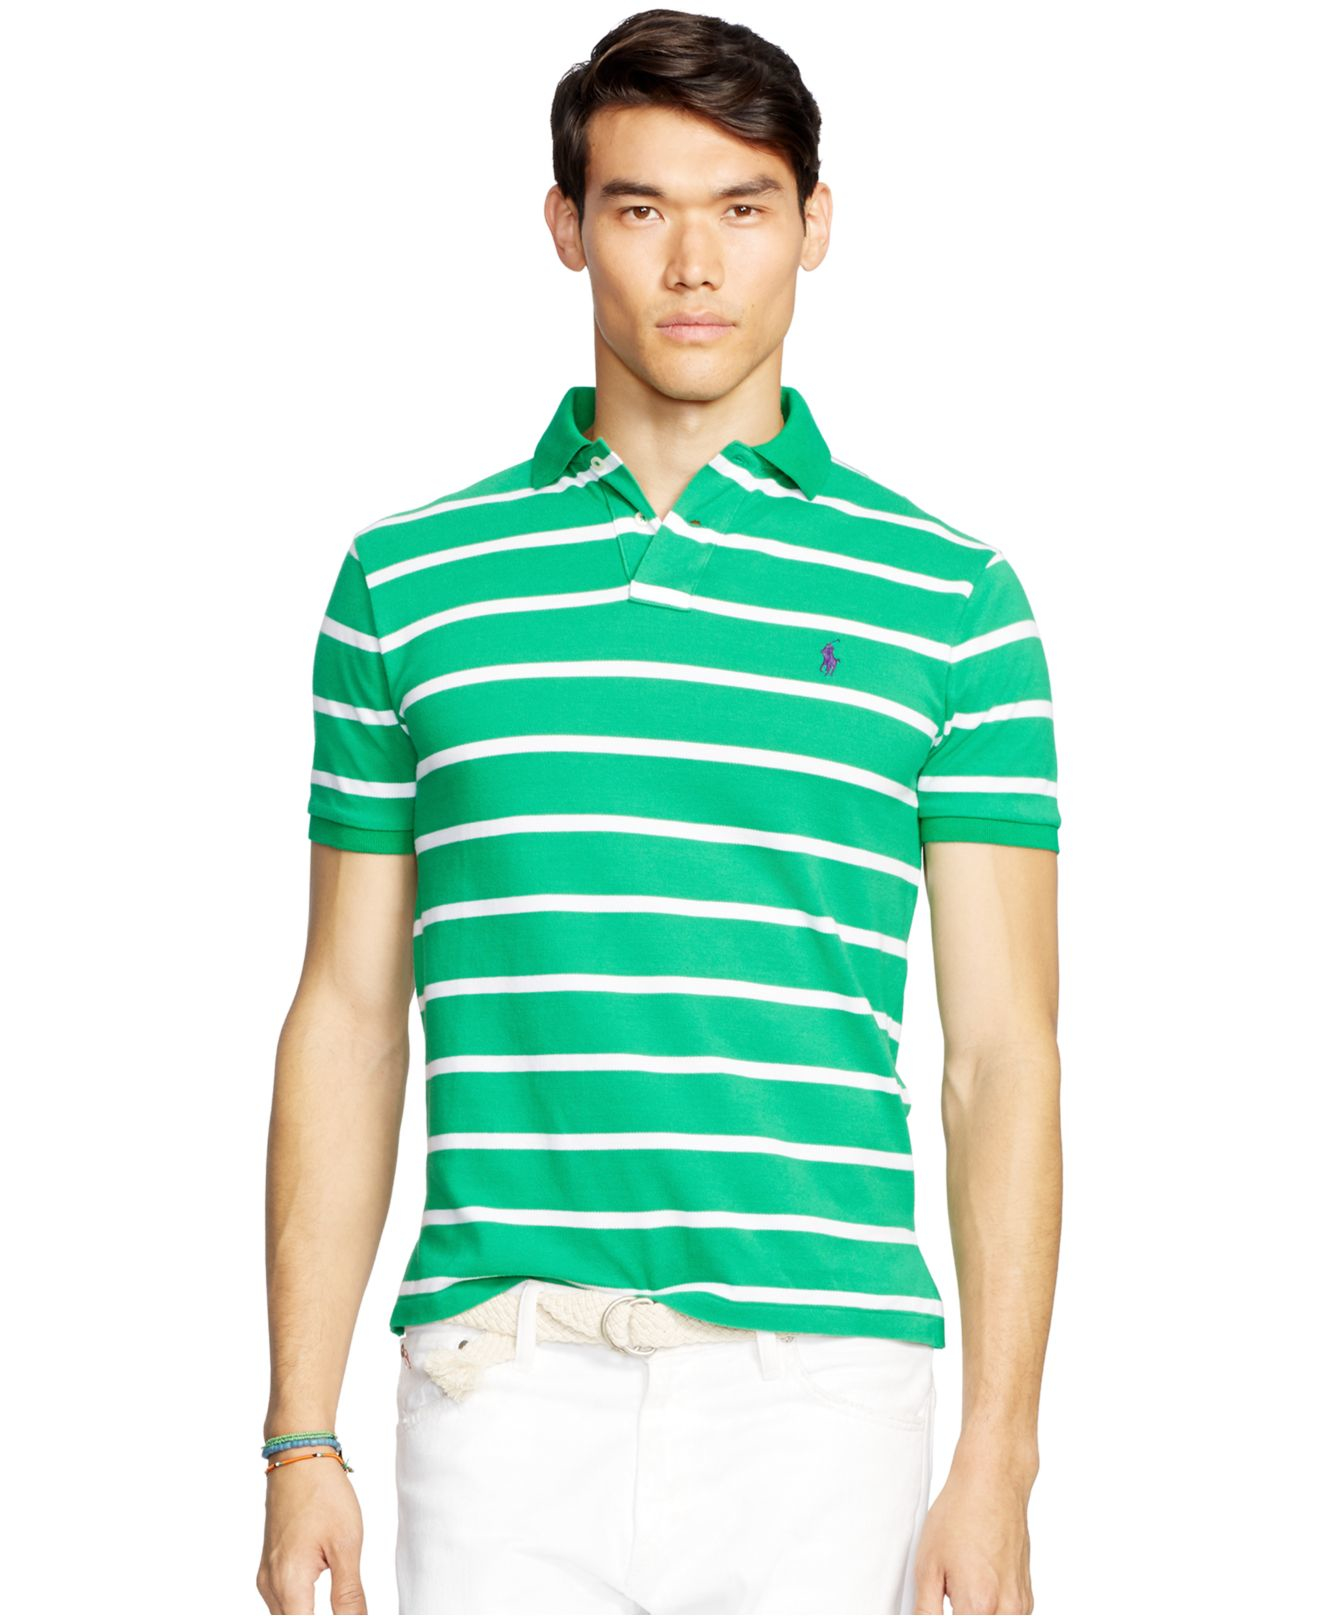 Polo ralph lauren men 39 s classic fit striped mesh polo Man in polo shirt